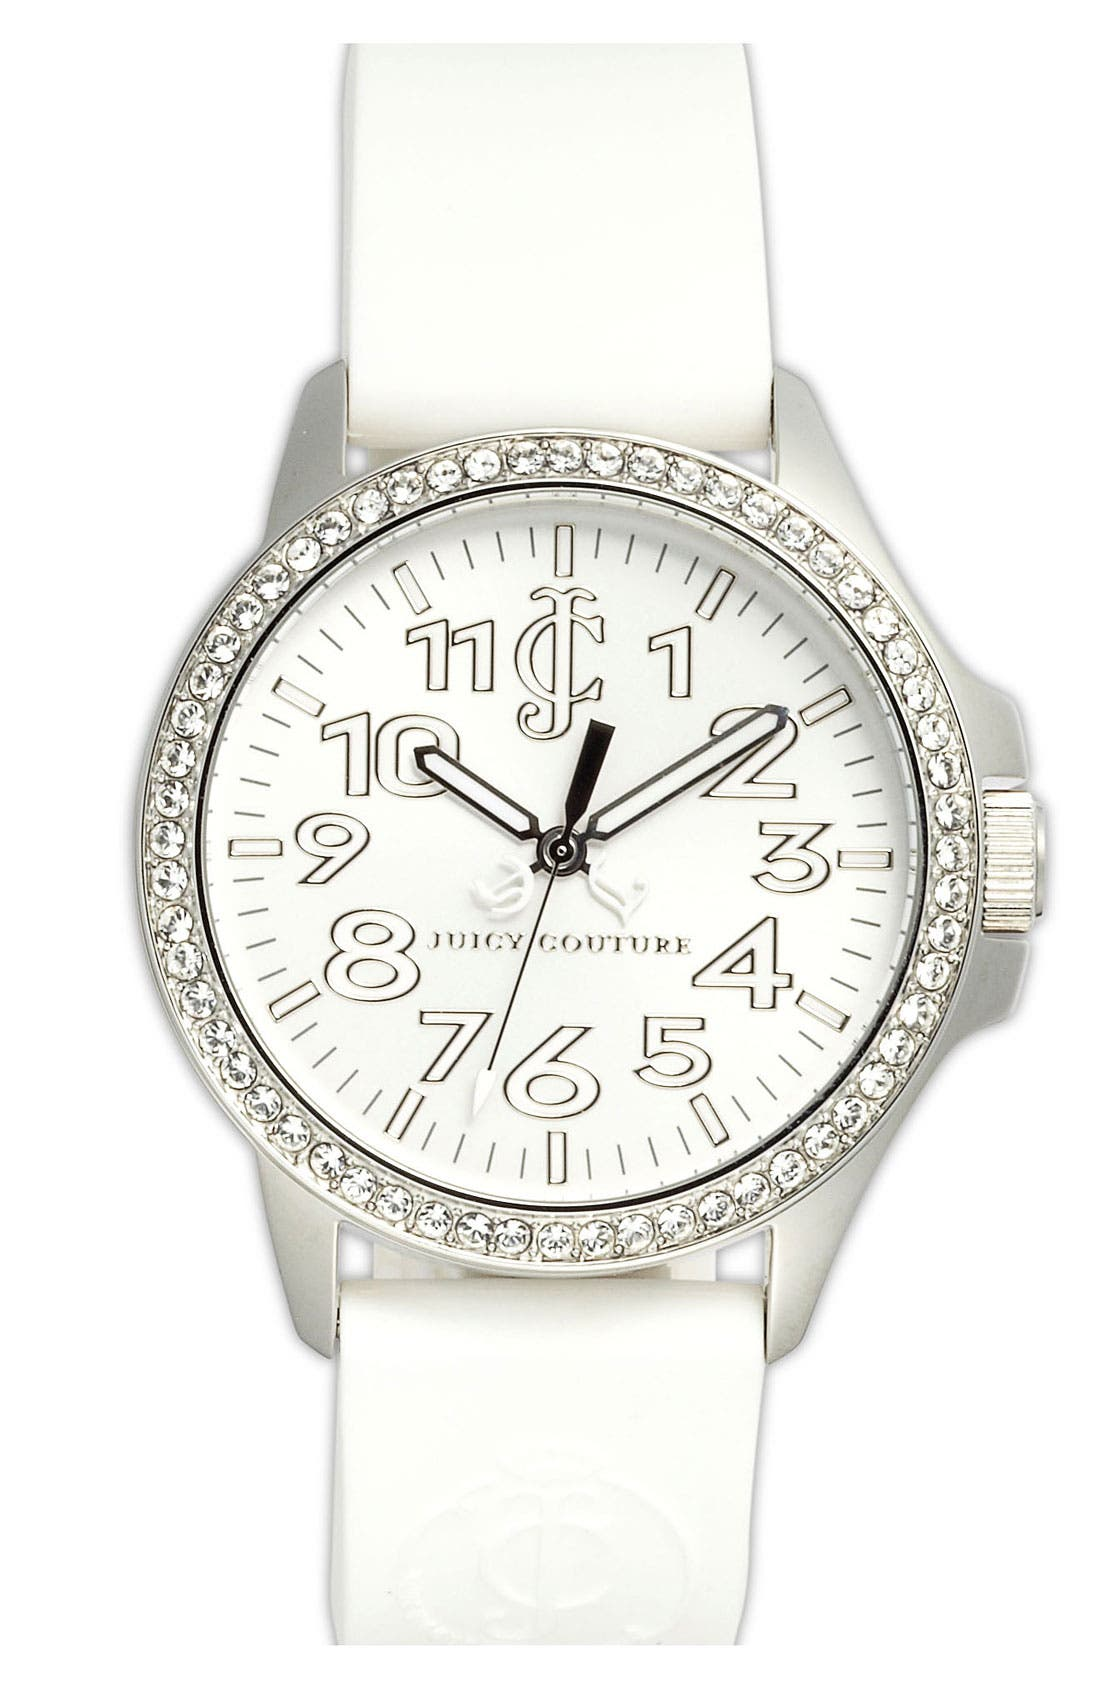 Main Image - Juicy Couture 'Jetsetter' Silicone Strap Watch, 38mm